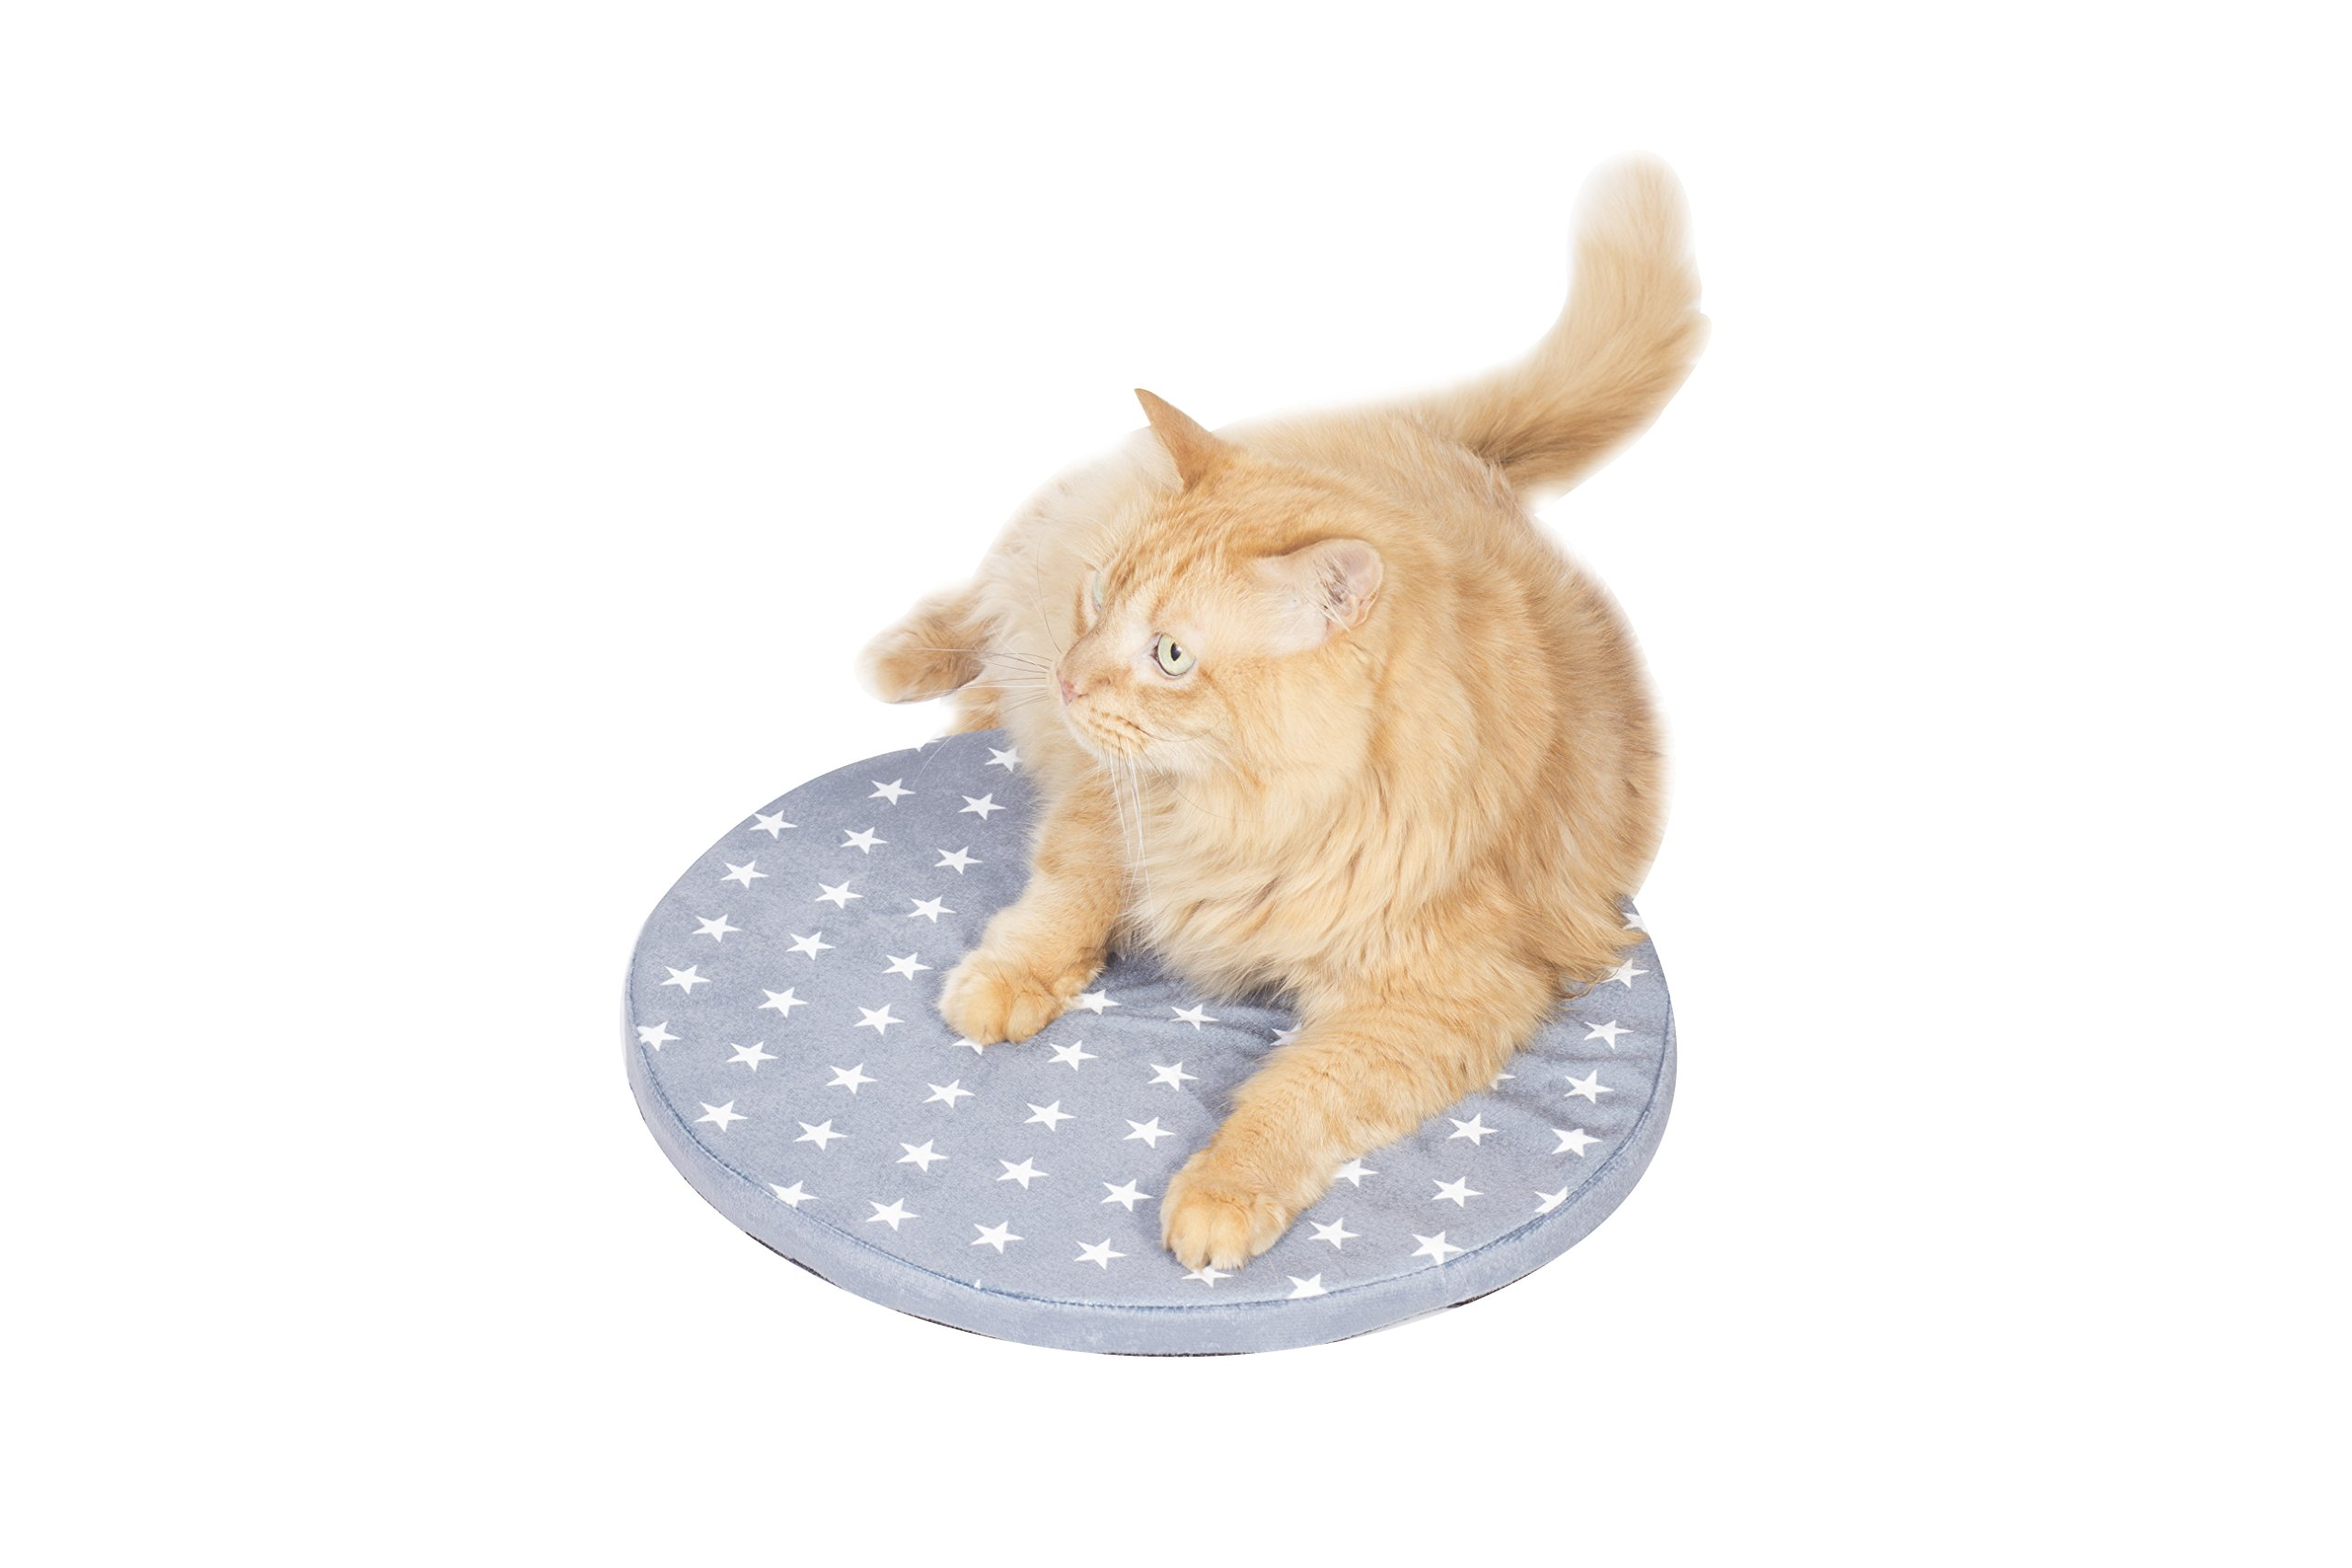 """Tabby James Kitty Nap Pad - The Circle That Your Cat Will Love - Cat Bed for Everyday Cat Naps (Dark Grey), 15"""" Diameter, Prevents Fur on Couch, Washable Cover"""